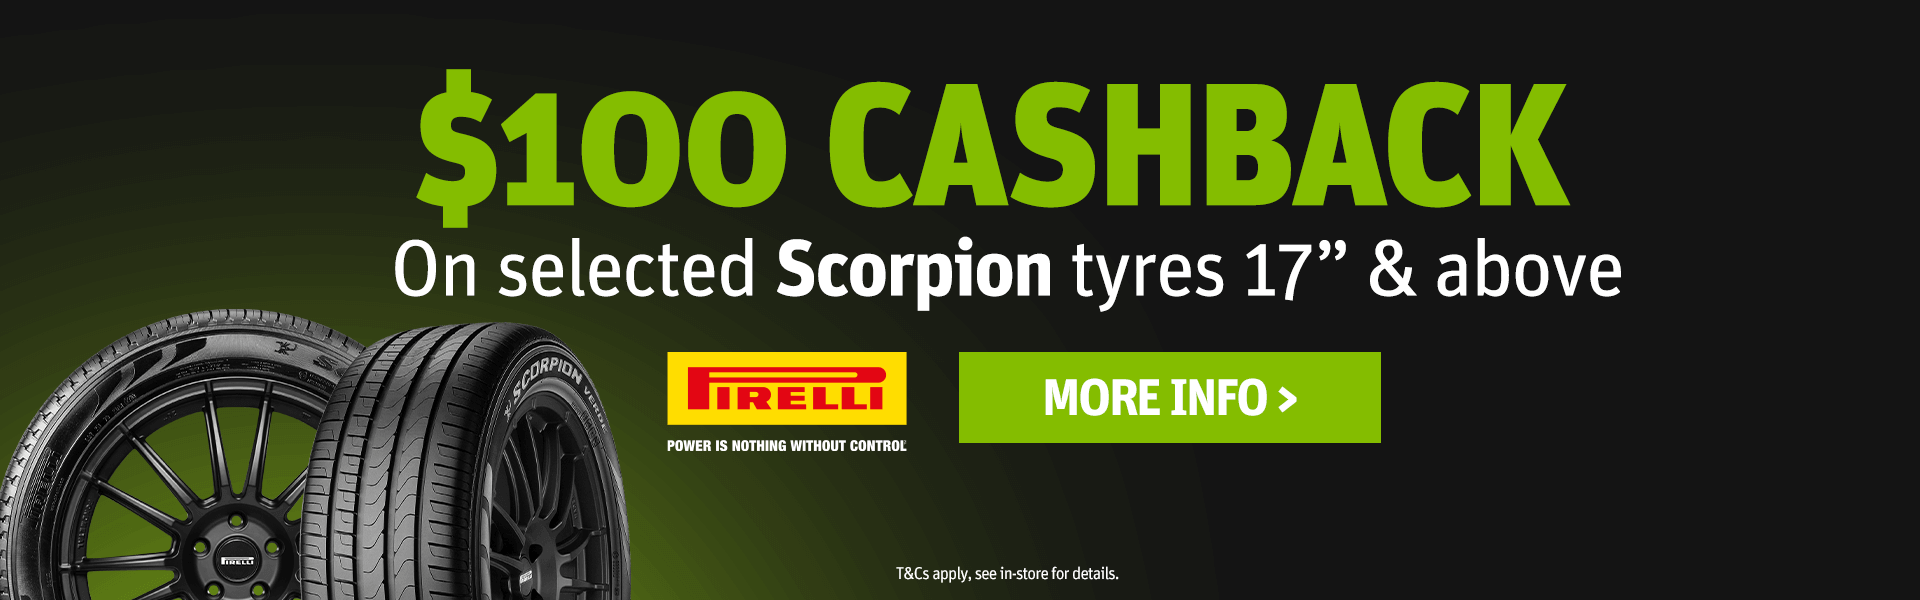 CDT $100 Cashback on selected scorpion tyres 17